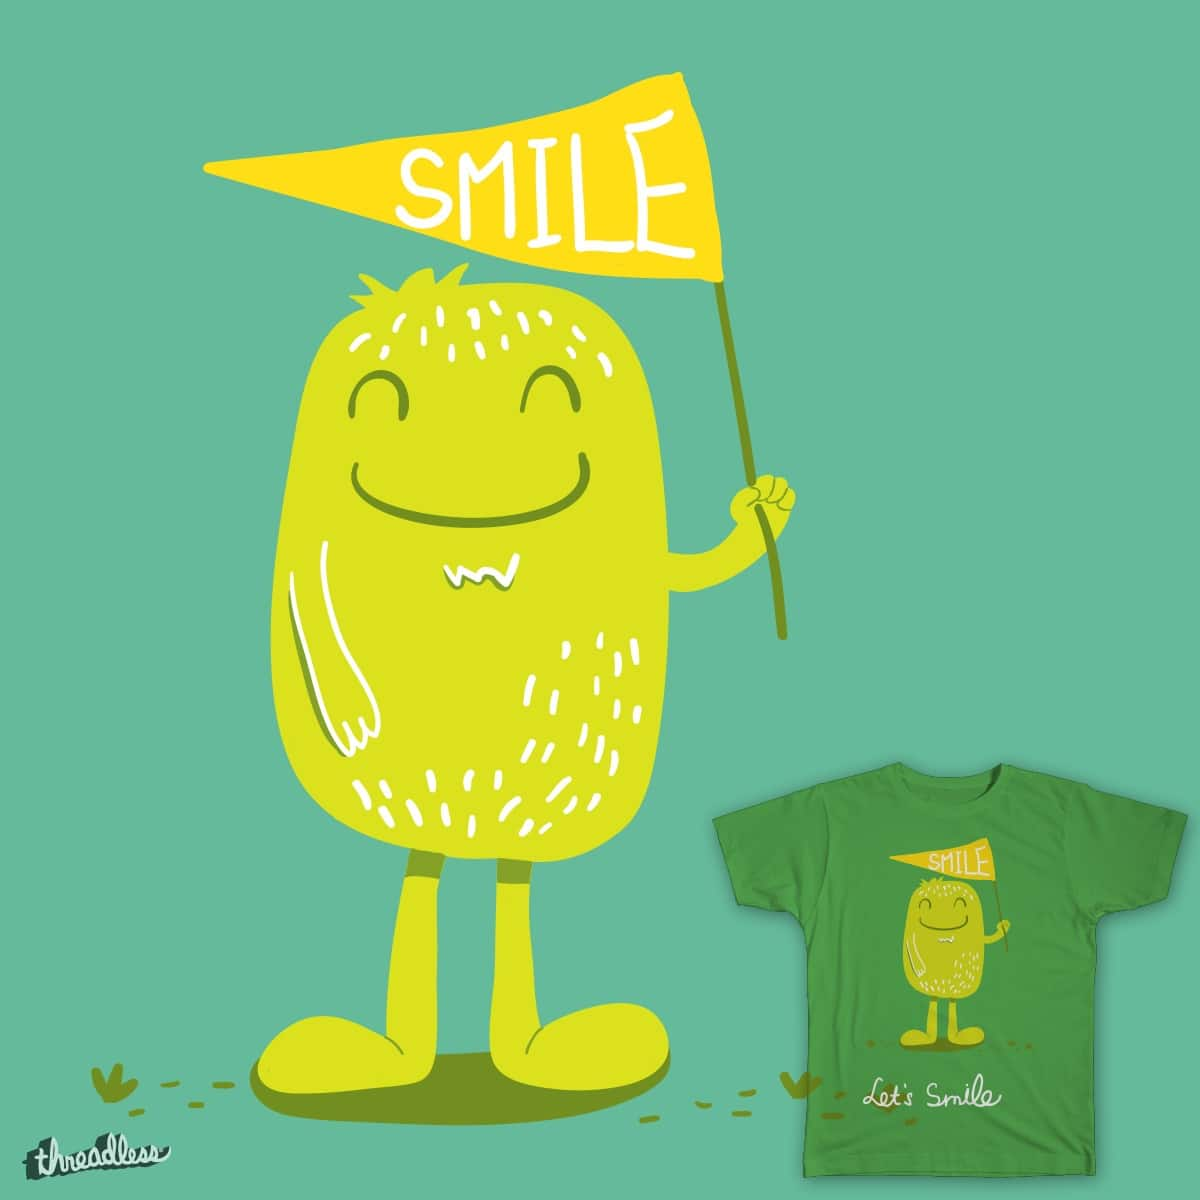 Let's Smile by woomzm on Threadless